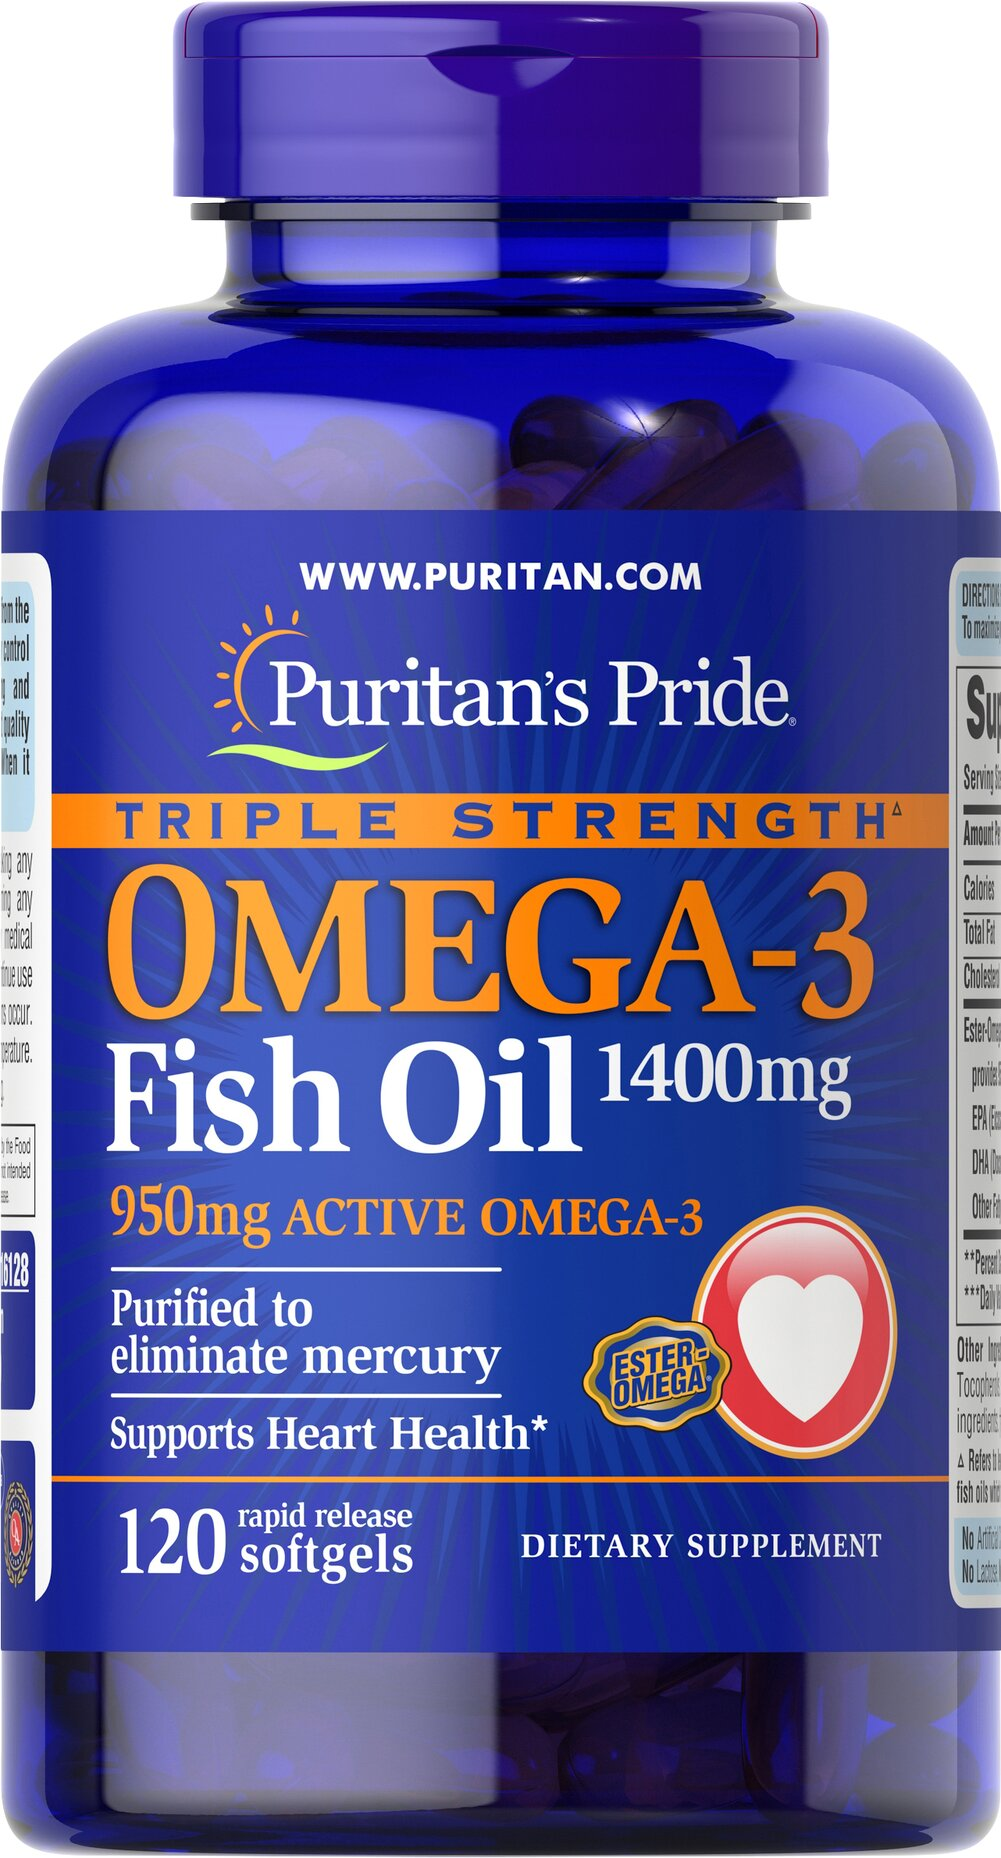 Triple Strength Omega-3 Fish Oil 1360 mg (950 mg Active Omega-3) <p><strong>Purified to Eliminate Mercury</strong></p><p>Contains 950 mg of active Omega-3 per softgel — our highest potency! </p> 120 Softgels 1360 mg $39.99